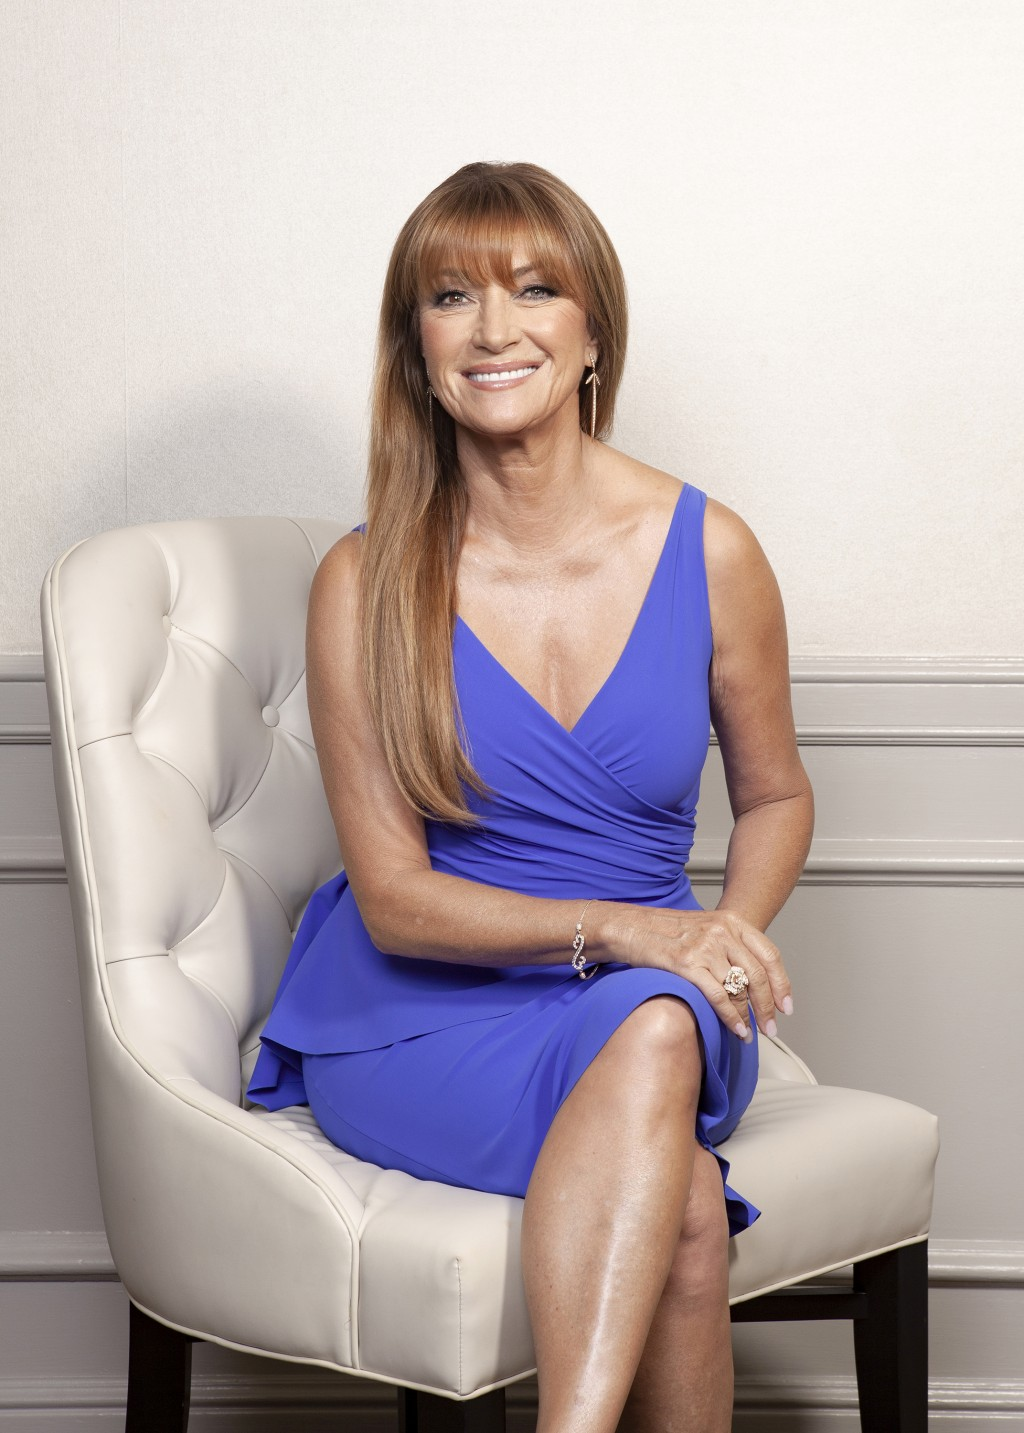 """This Oct. 6, 2019 photo shows actress Jane Seymour posing at The Four Seasons Hotel in Los Angeles to promote her role in """"The Kominsky Method."""" (Phot..."""